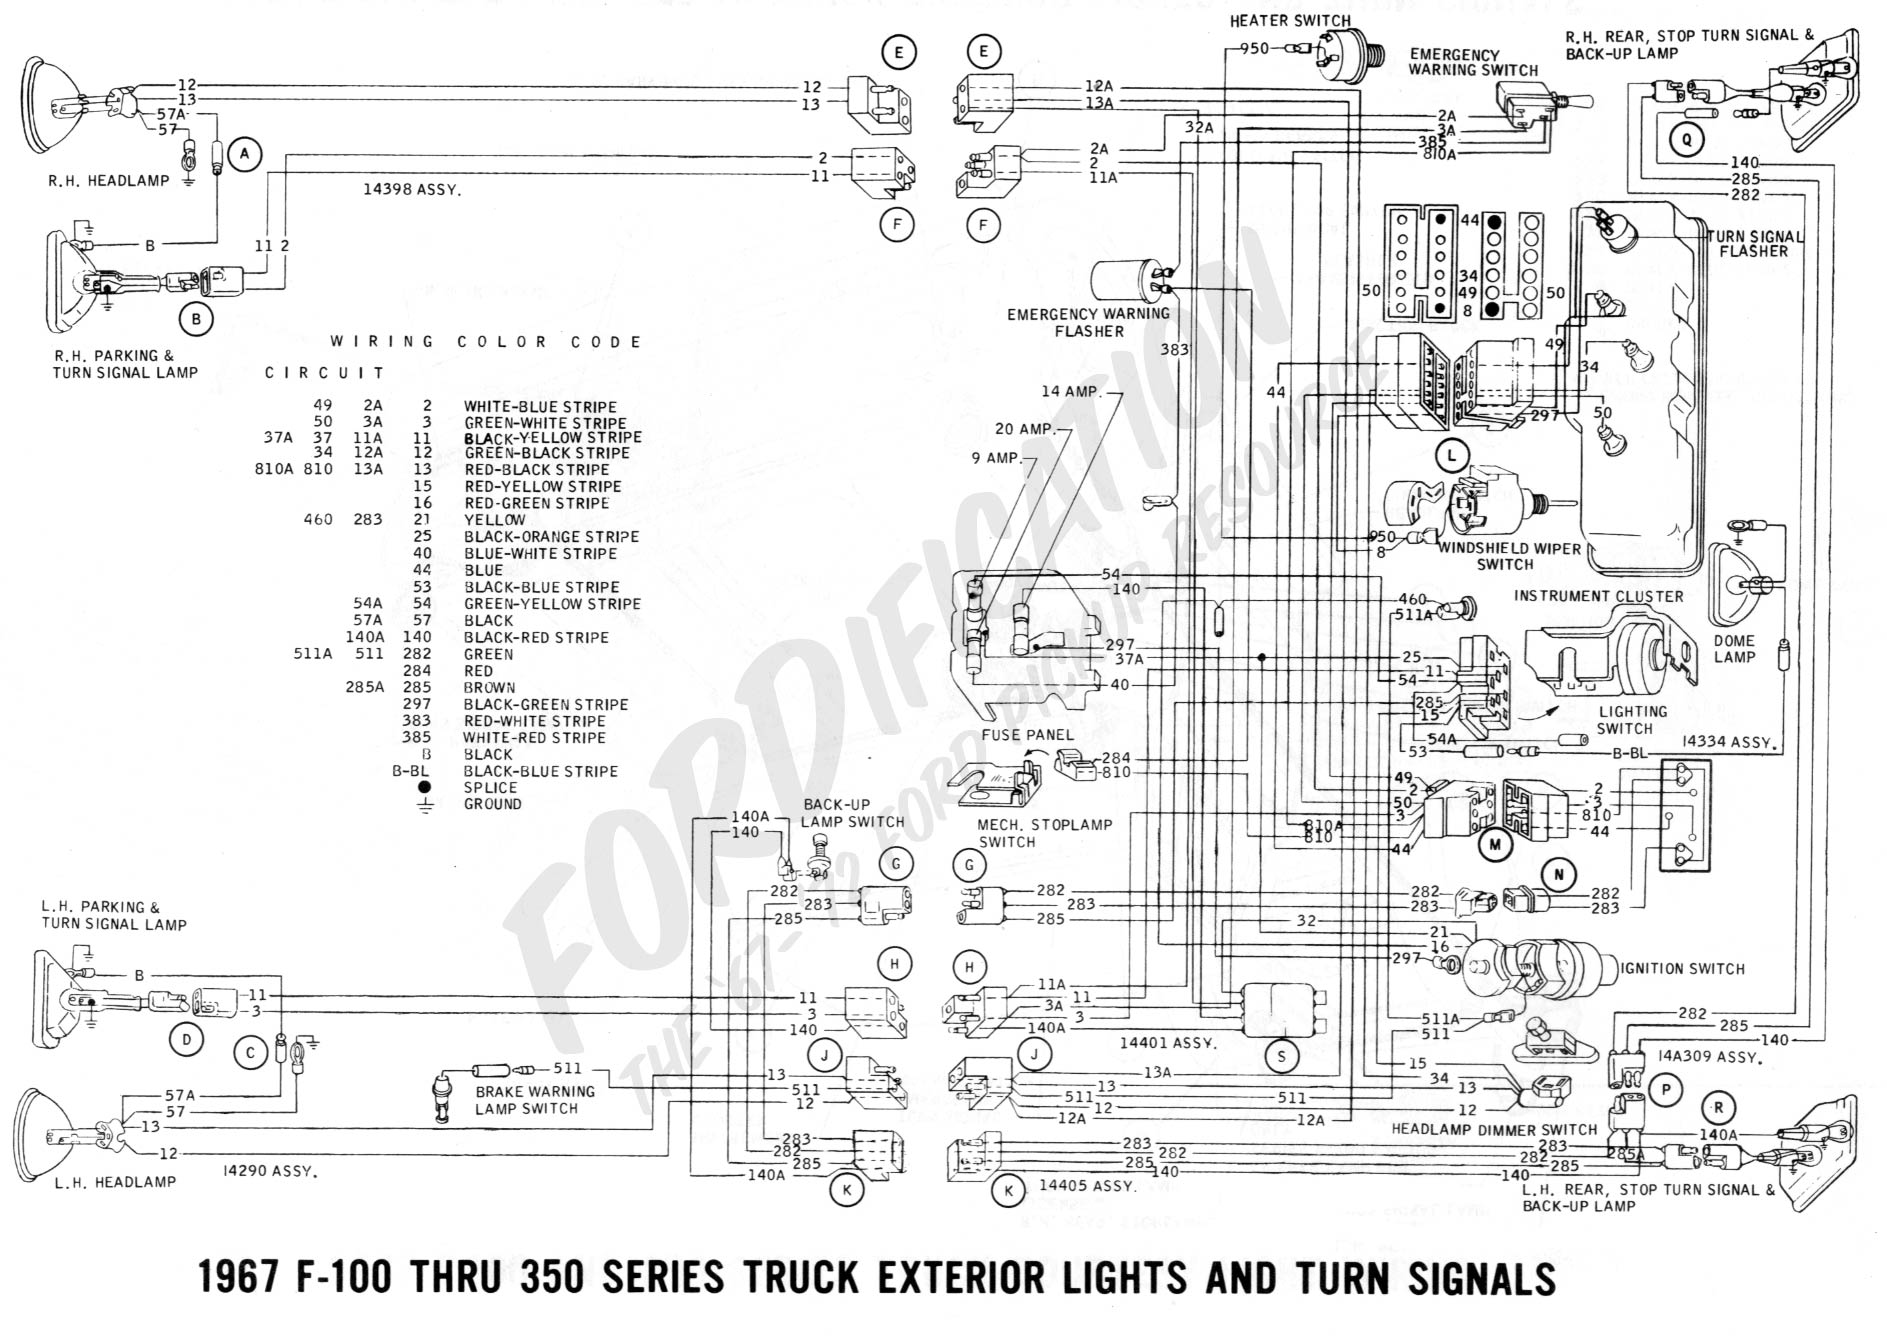 1967 Mustang Dash Wiring Diagram. Wiring. Wiring Diagram